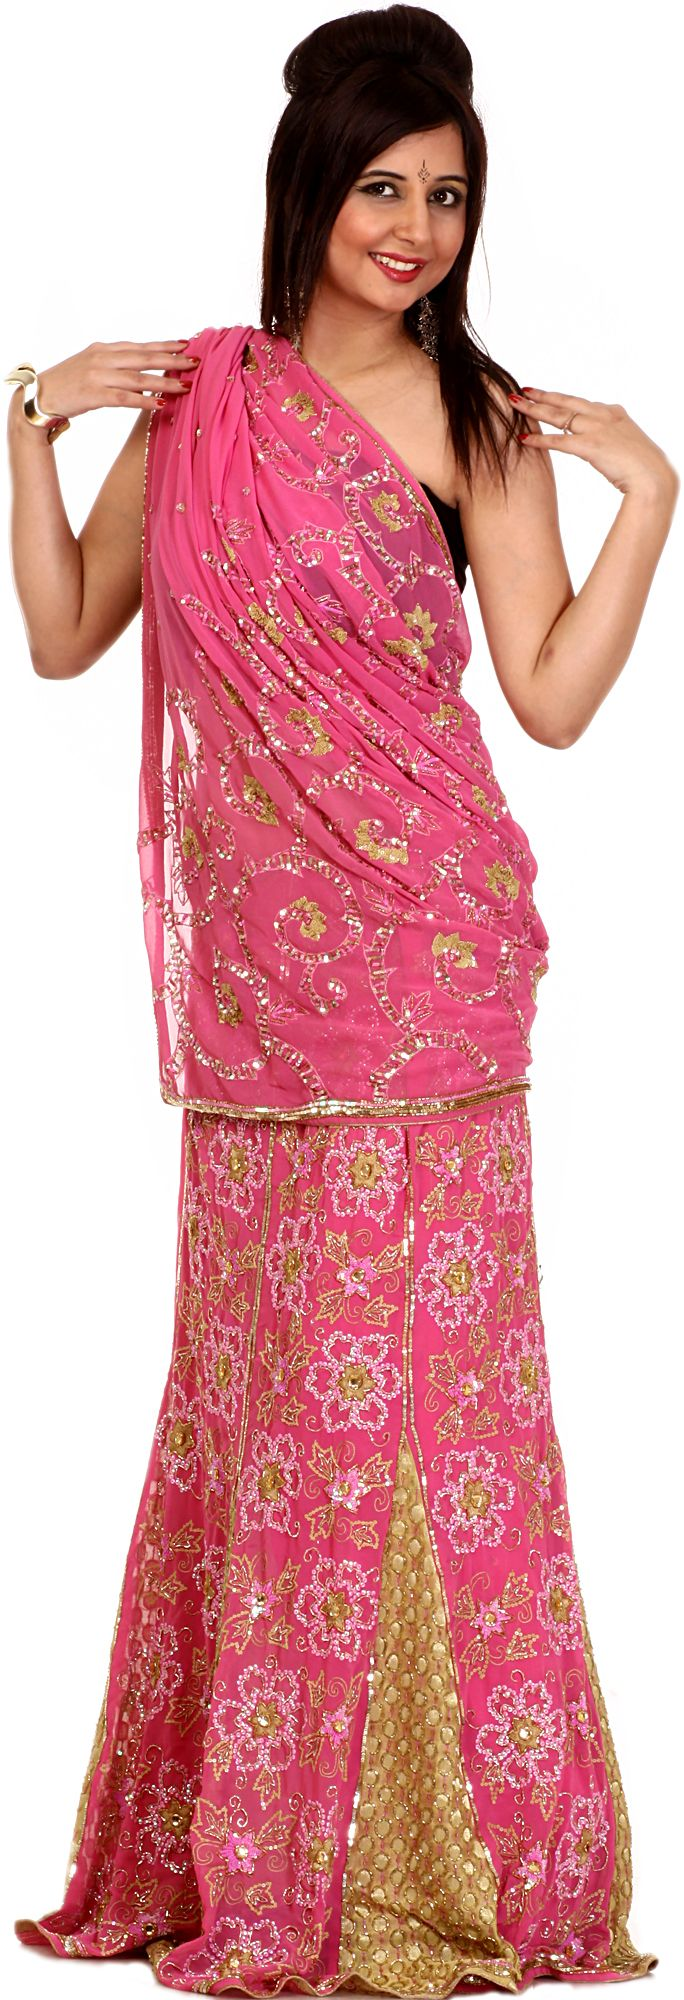 Pink and Khaki Designer Lehenga Sari with Sequins Embroidered as Flowers